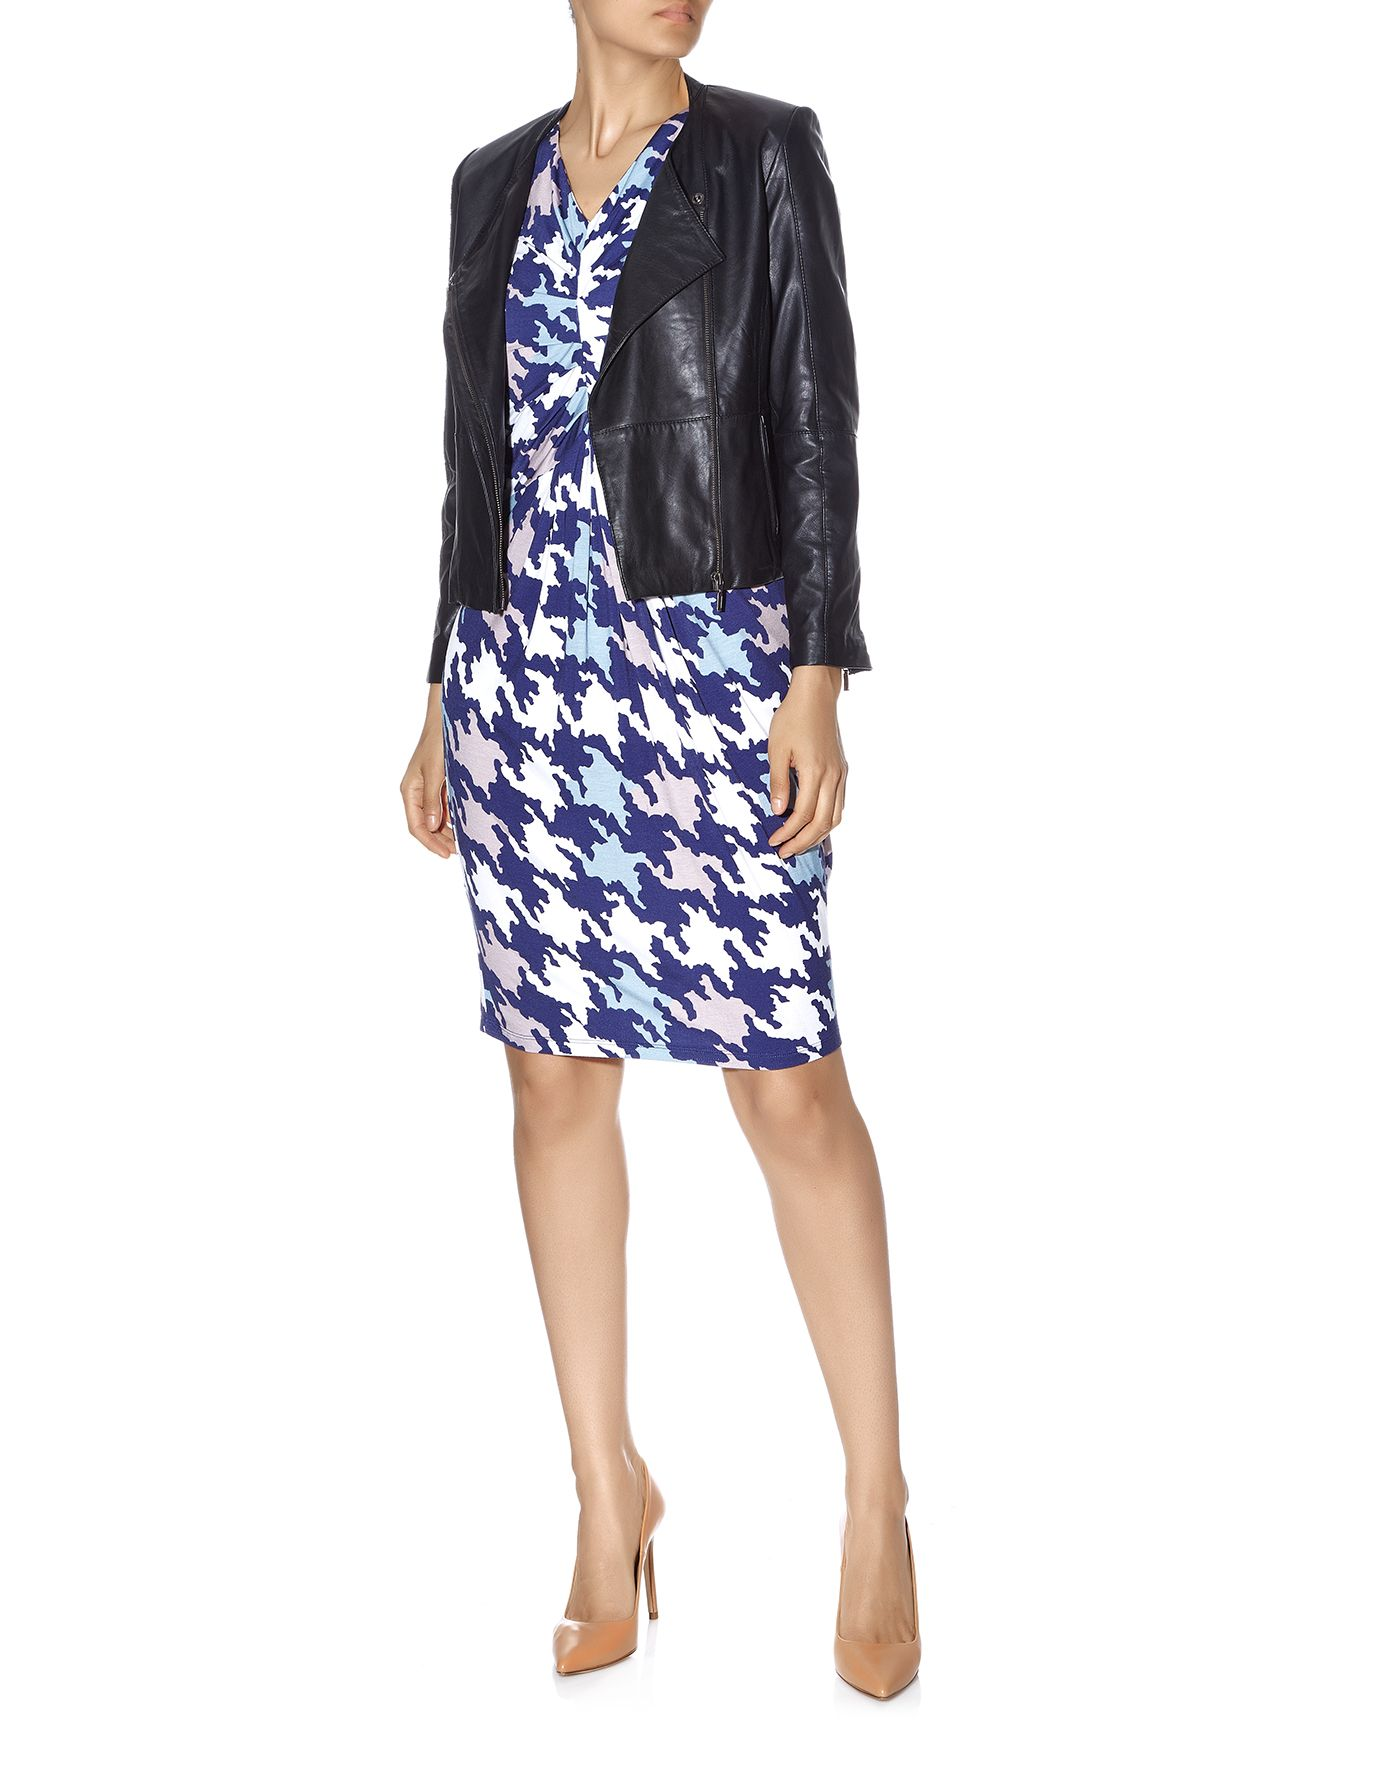 Houndstooth Print Jersey Dress